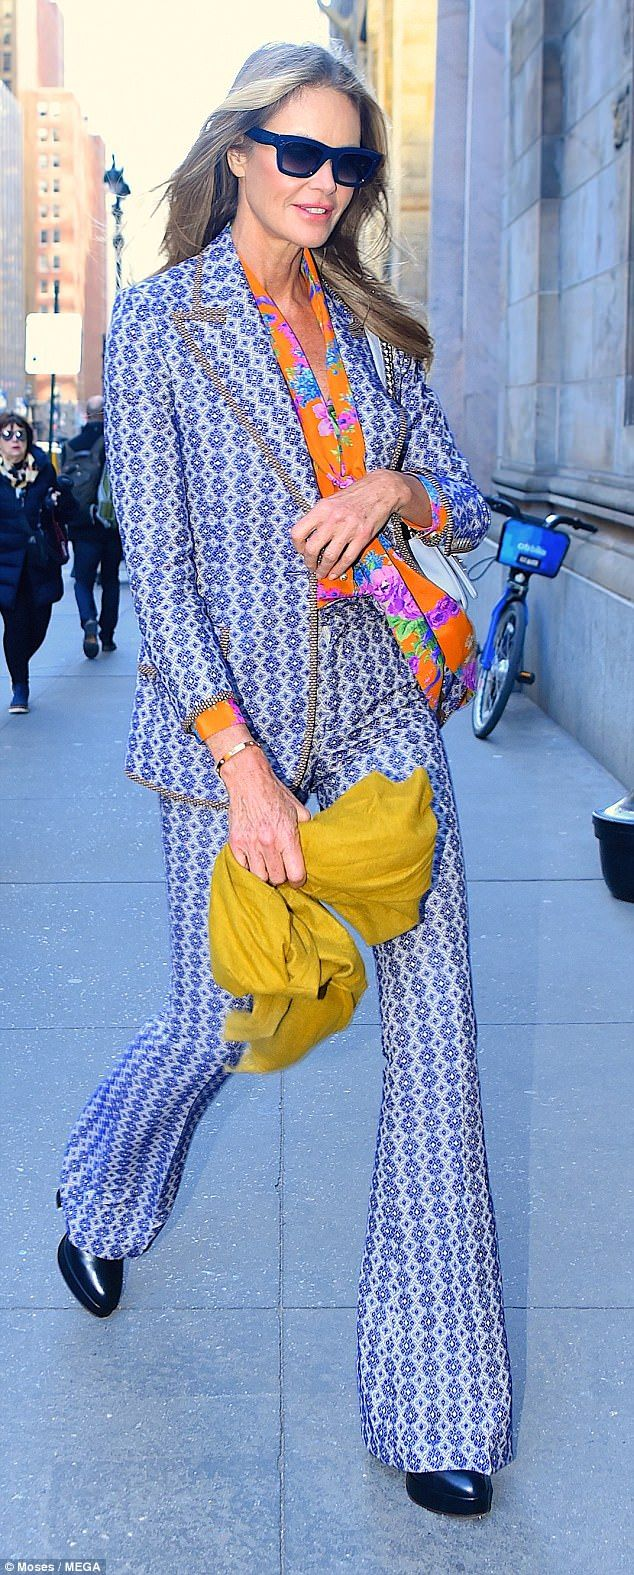 Elle macpherson looks striking in a floral pantsuit she had one of